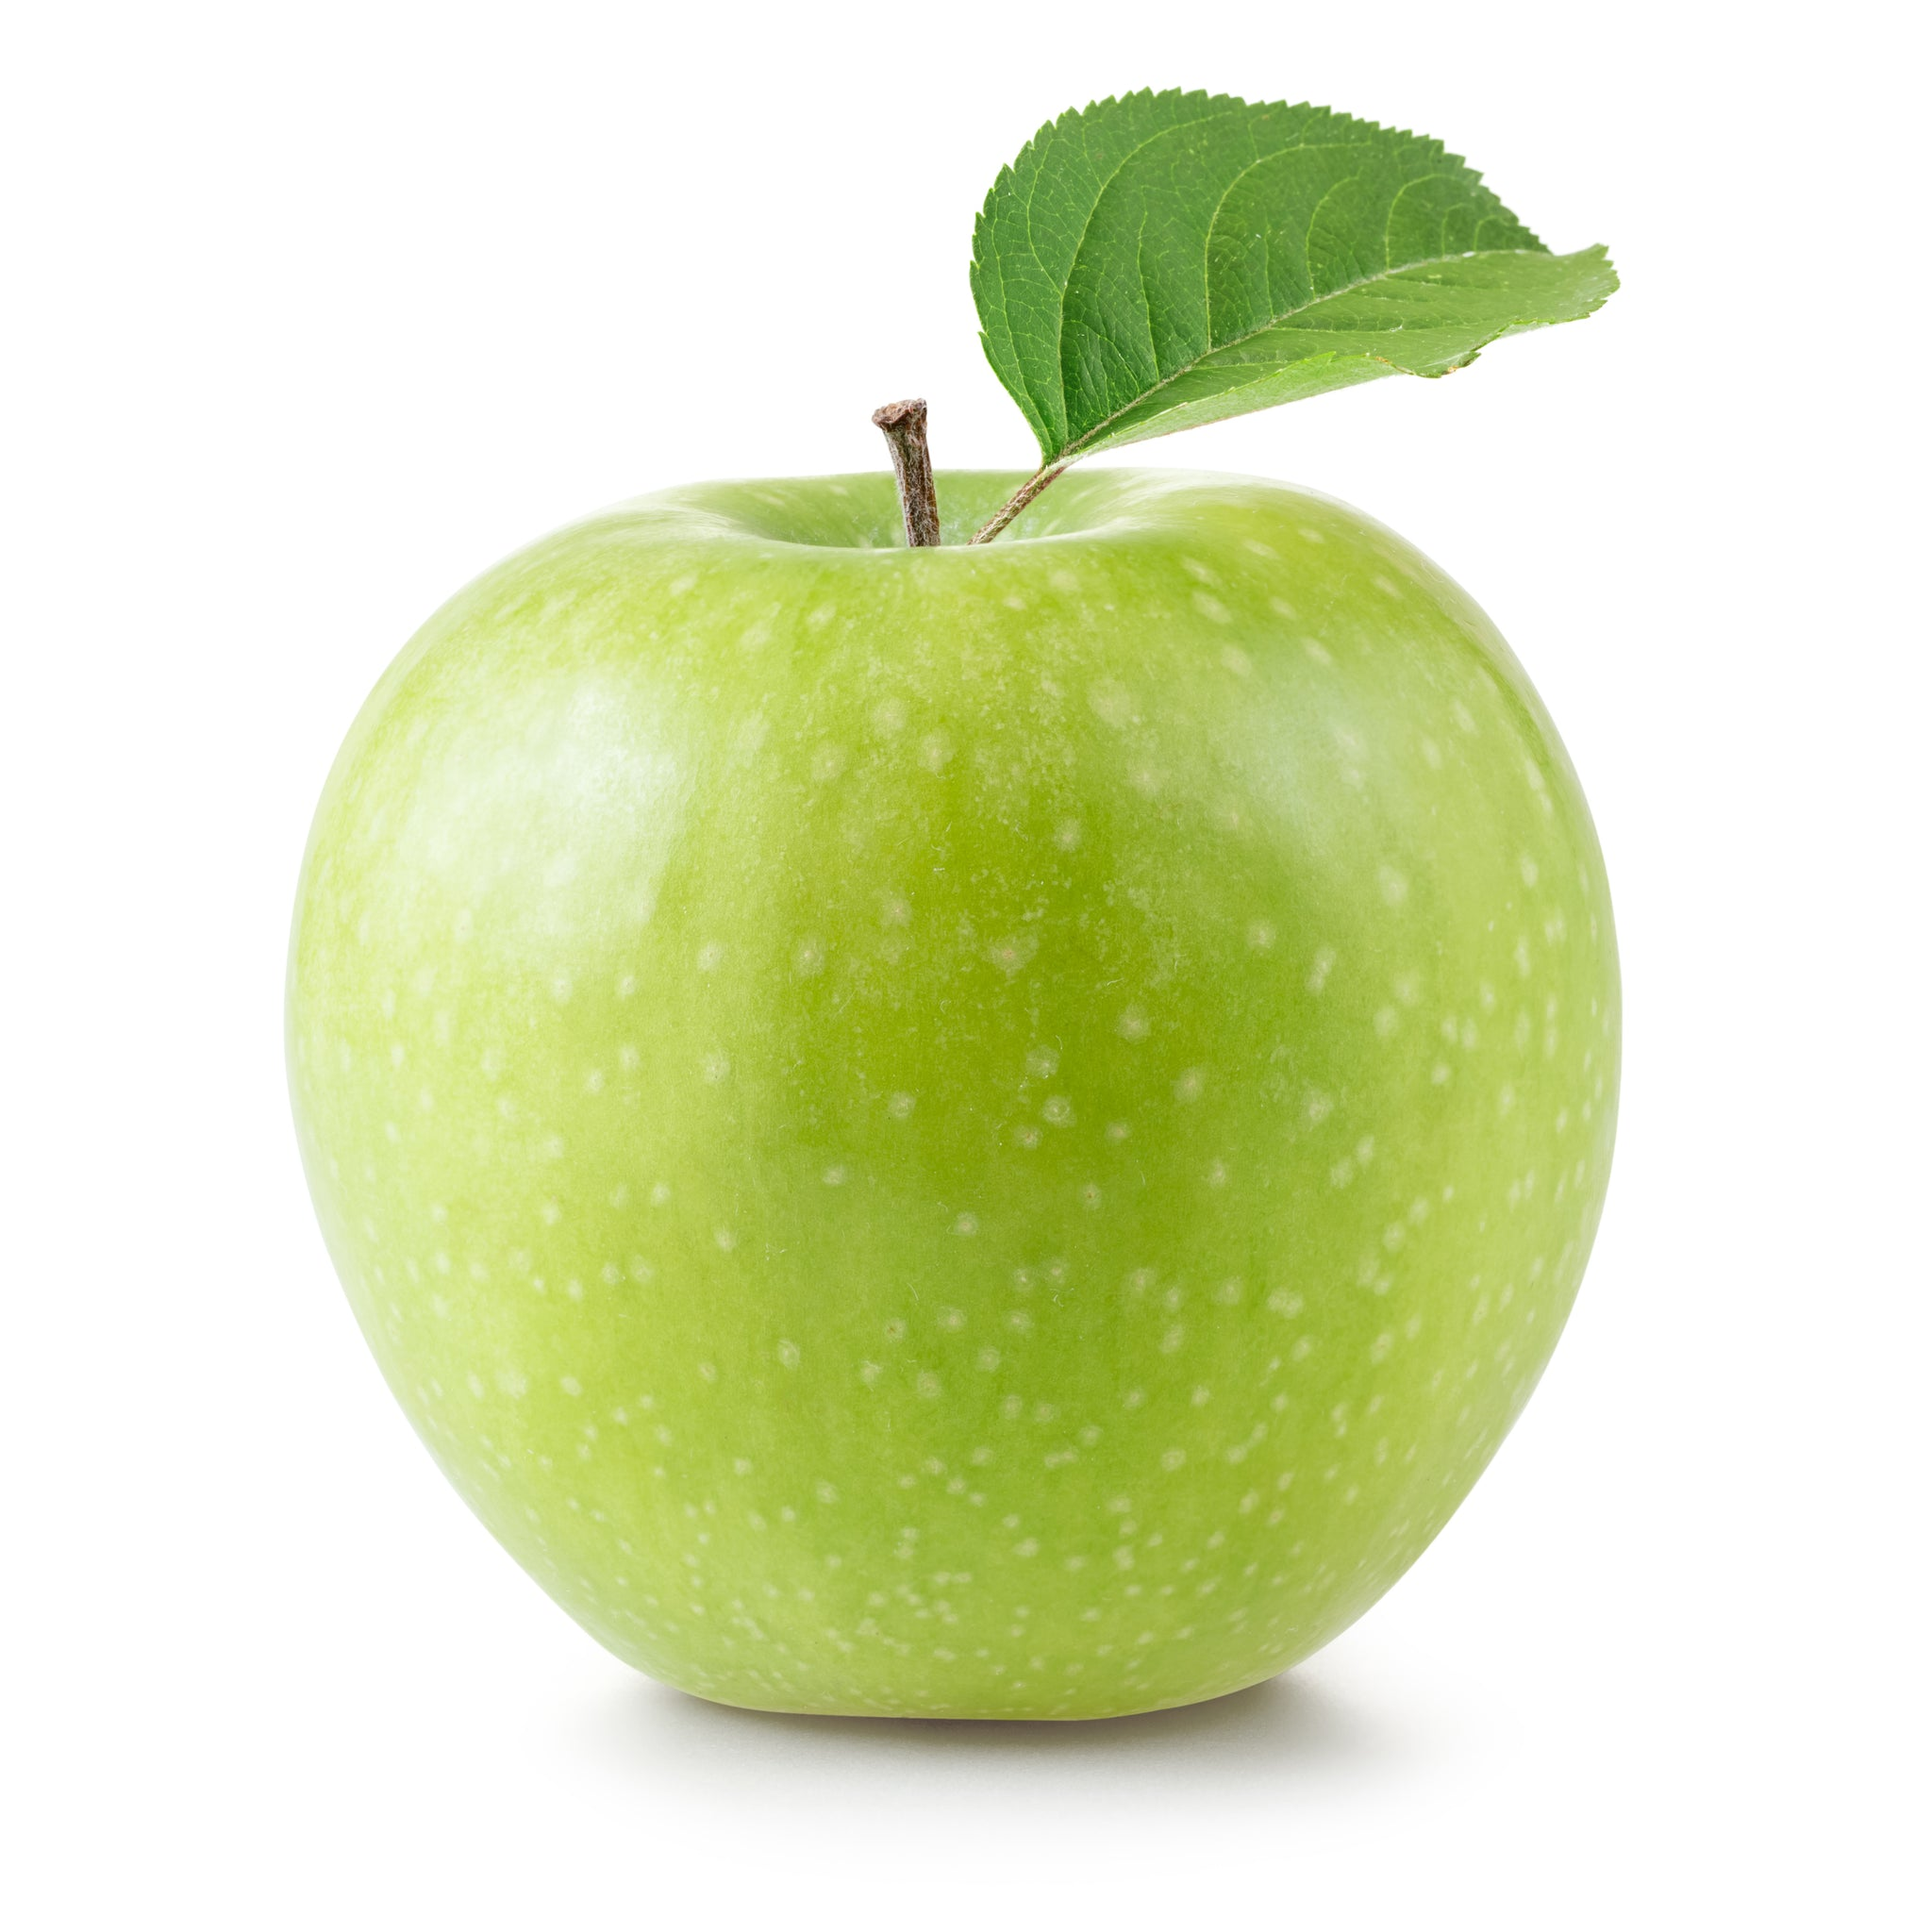 stl>Apples, Granny Smith (1 Apple)